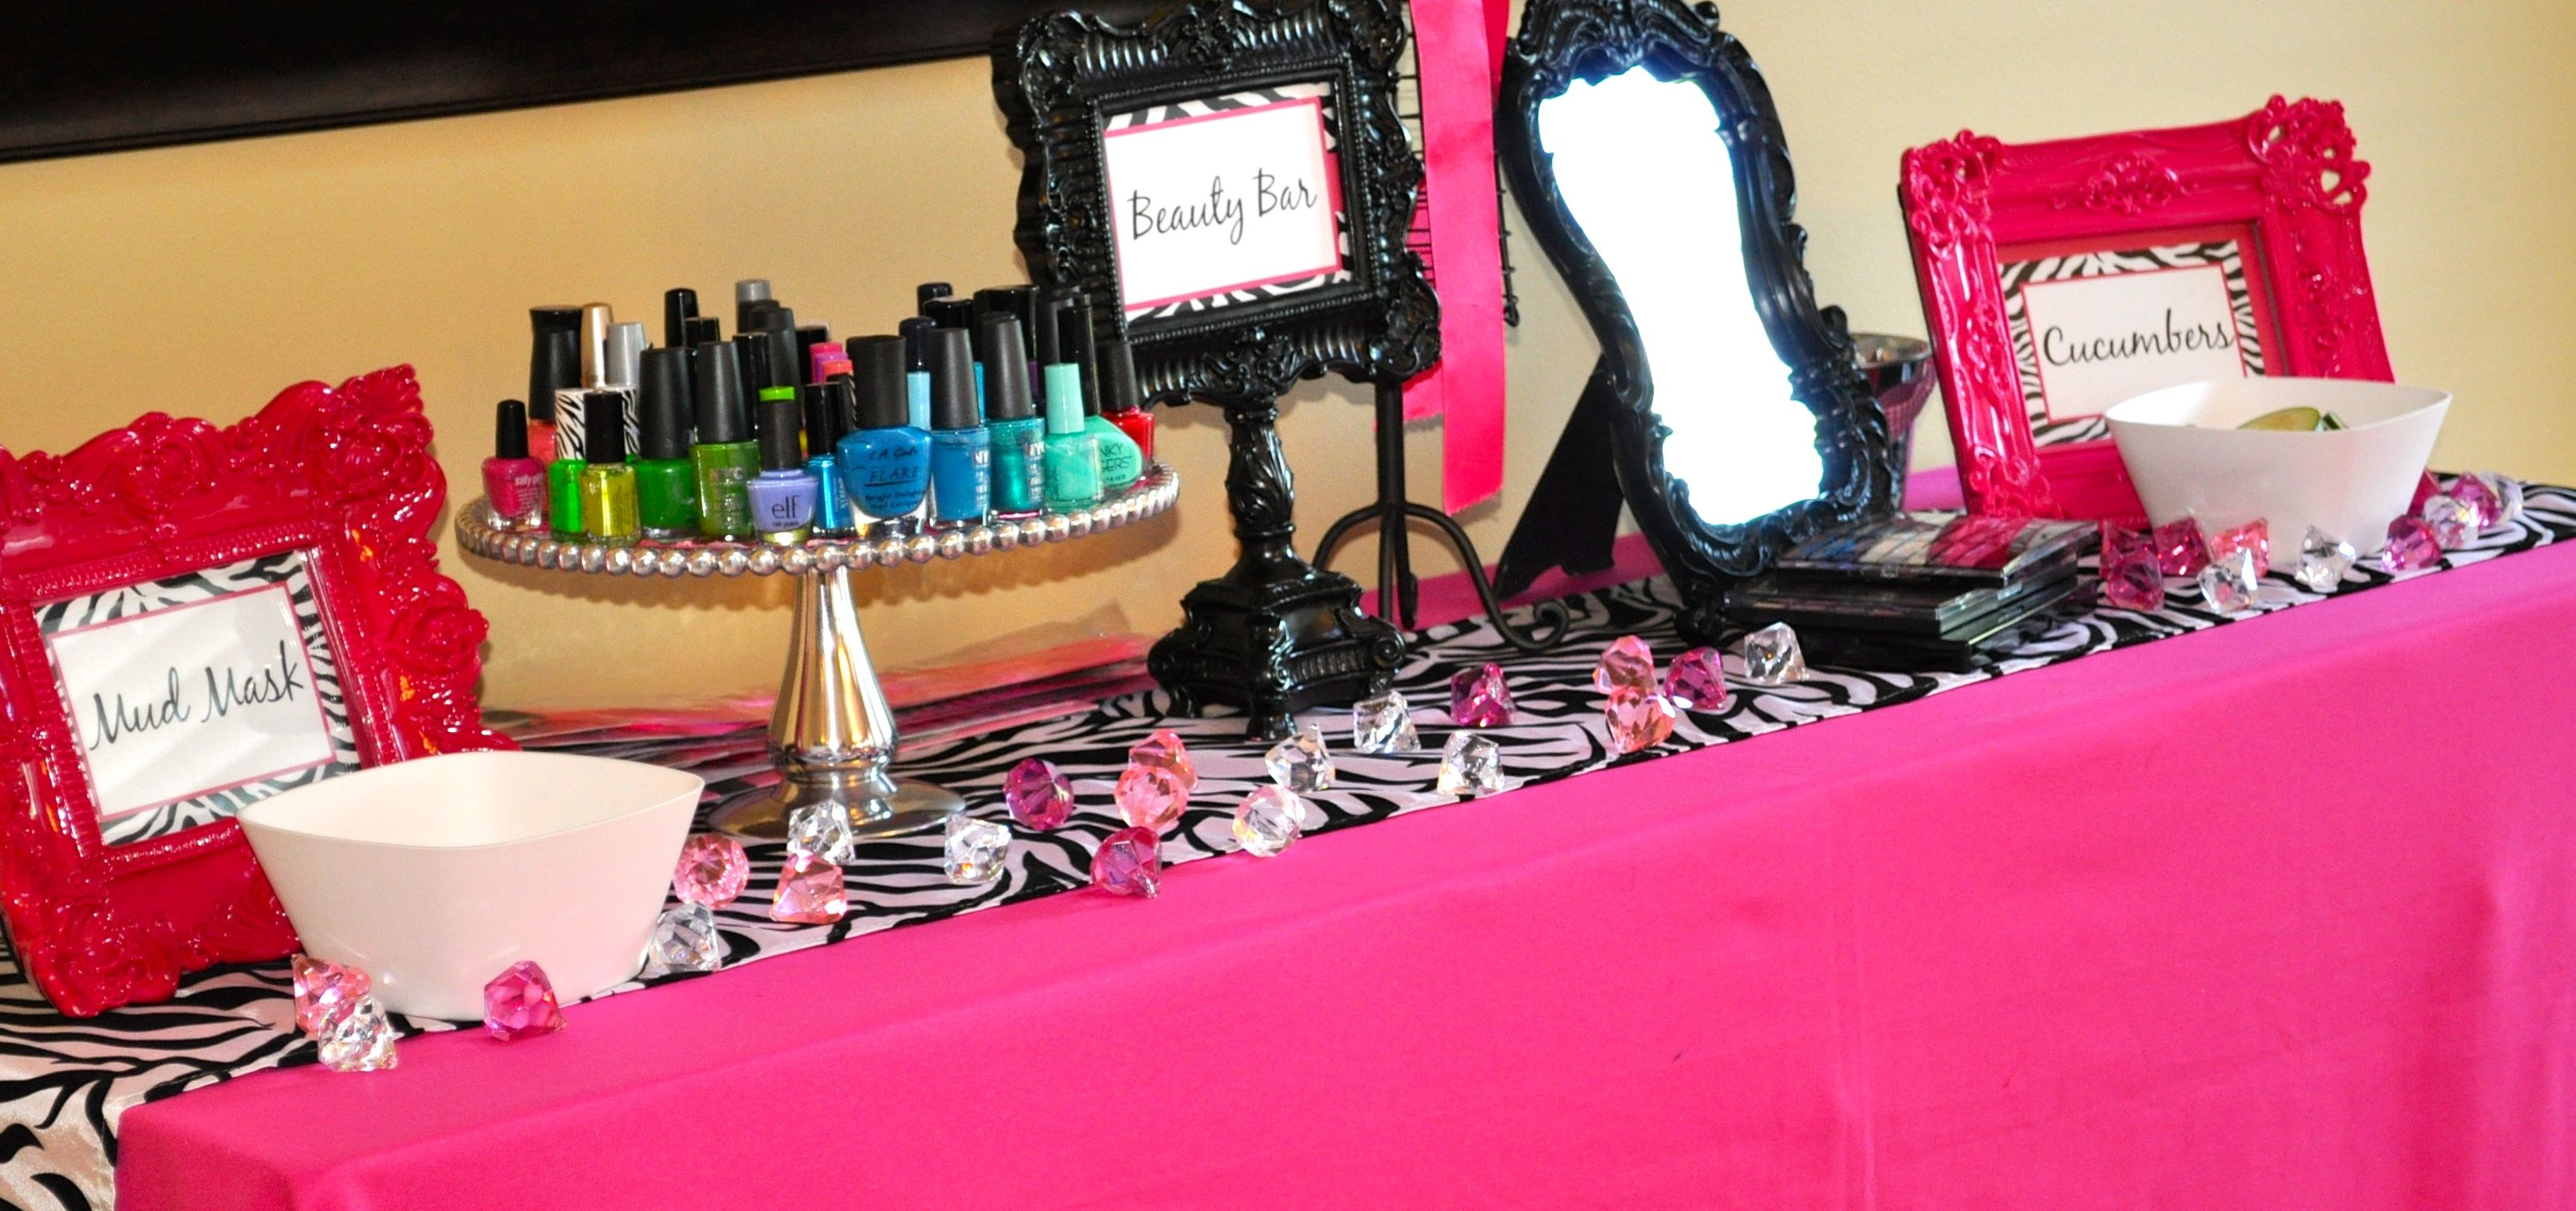 Beauty Bar At Pink Zebra Spa Party Spa Birthday Party